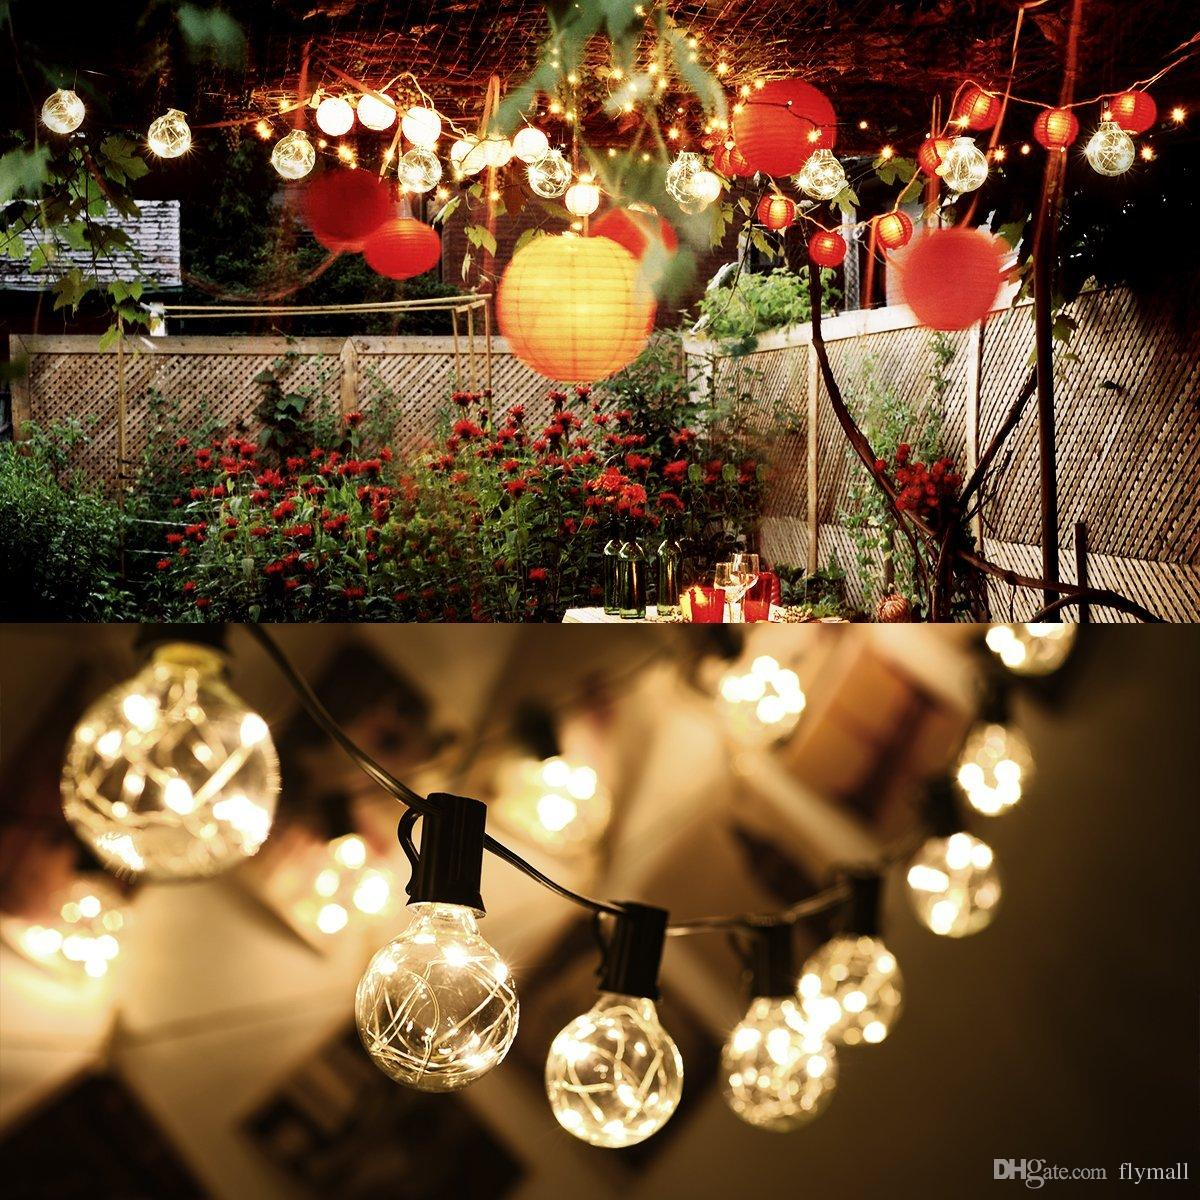 G40 Christmas Lights Globe String Light 25LED Bulb Outdoor Decorative Copper Wire String Lights for Garden, Patios, Home Decor, Wedding